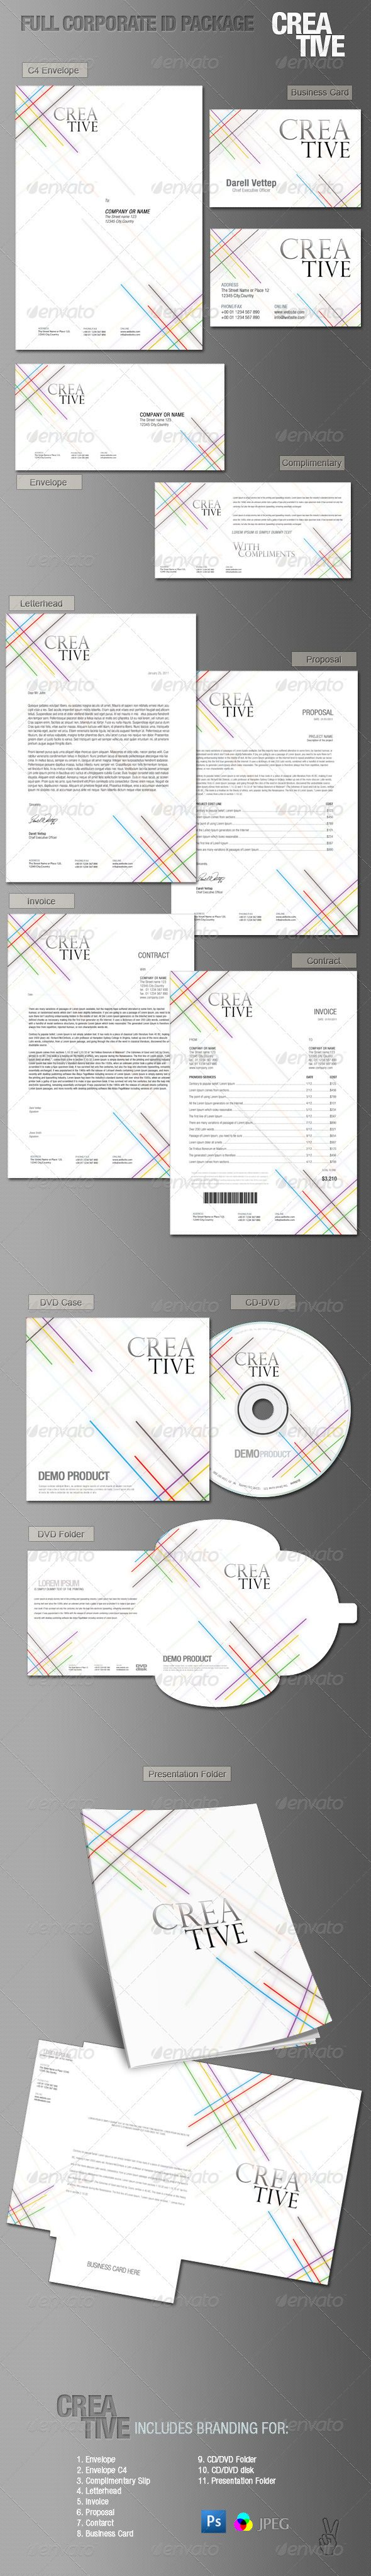 Full Corporate ID Package - CREATIVE  #GraphicRiver